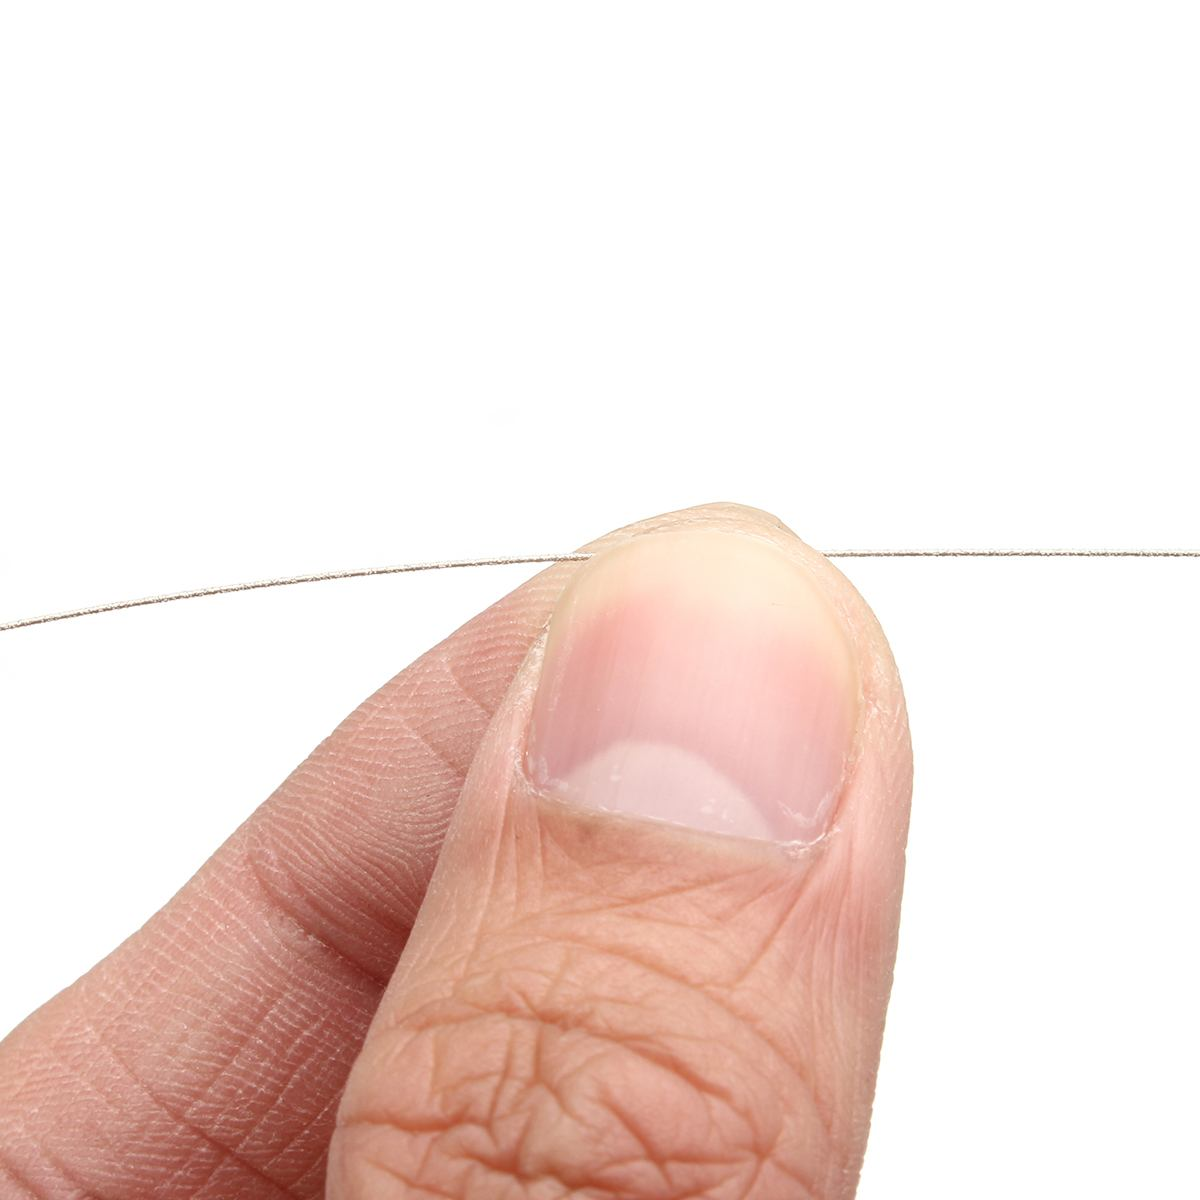 Image 5 - 10m Length DIY Coping Cutting Saw Blades 0.35mm Diamond Cutting Wire Metal Wire Diamond Emery Jade Metal Stone Glass-in Saw Blades from Tools